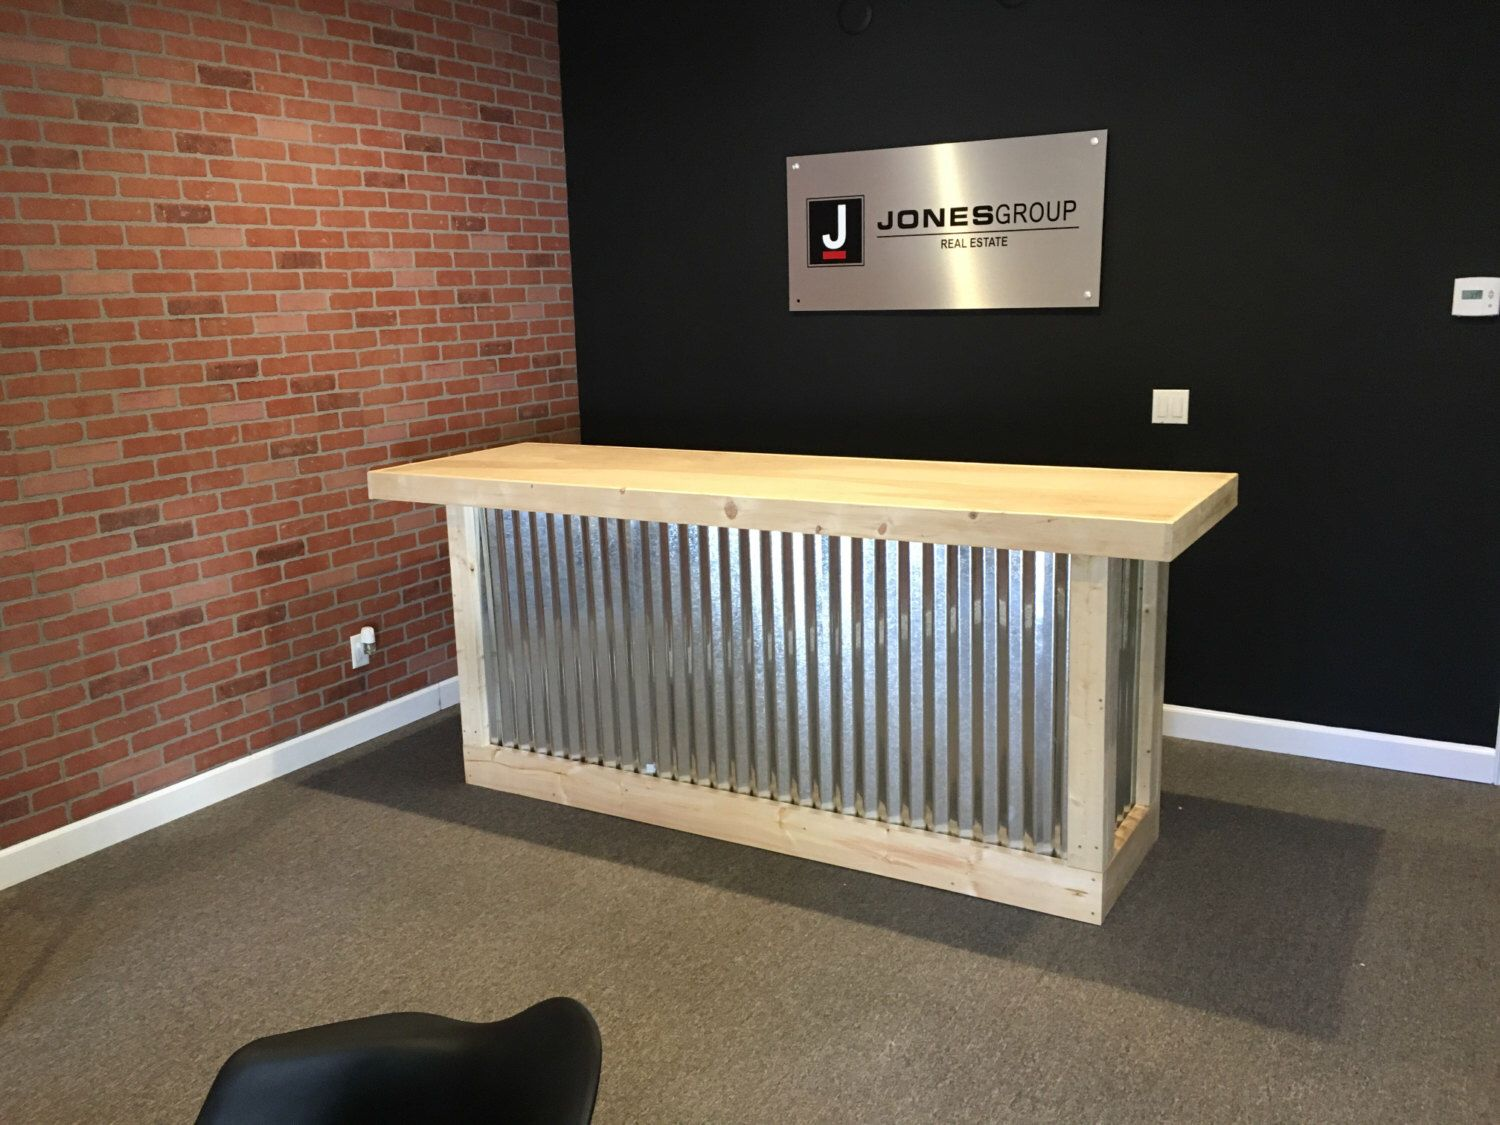 8 Foot Corrugated Metal Bar Sales Counter Reception Desk